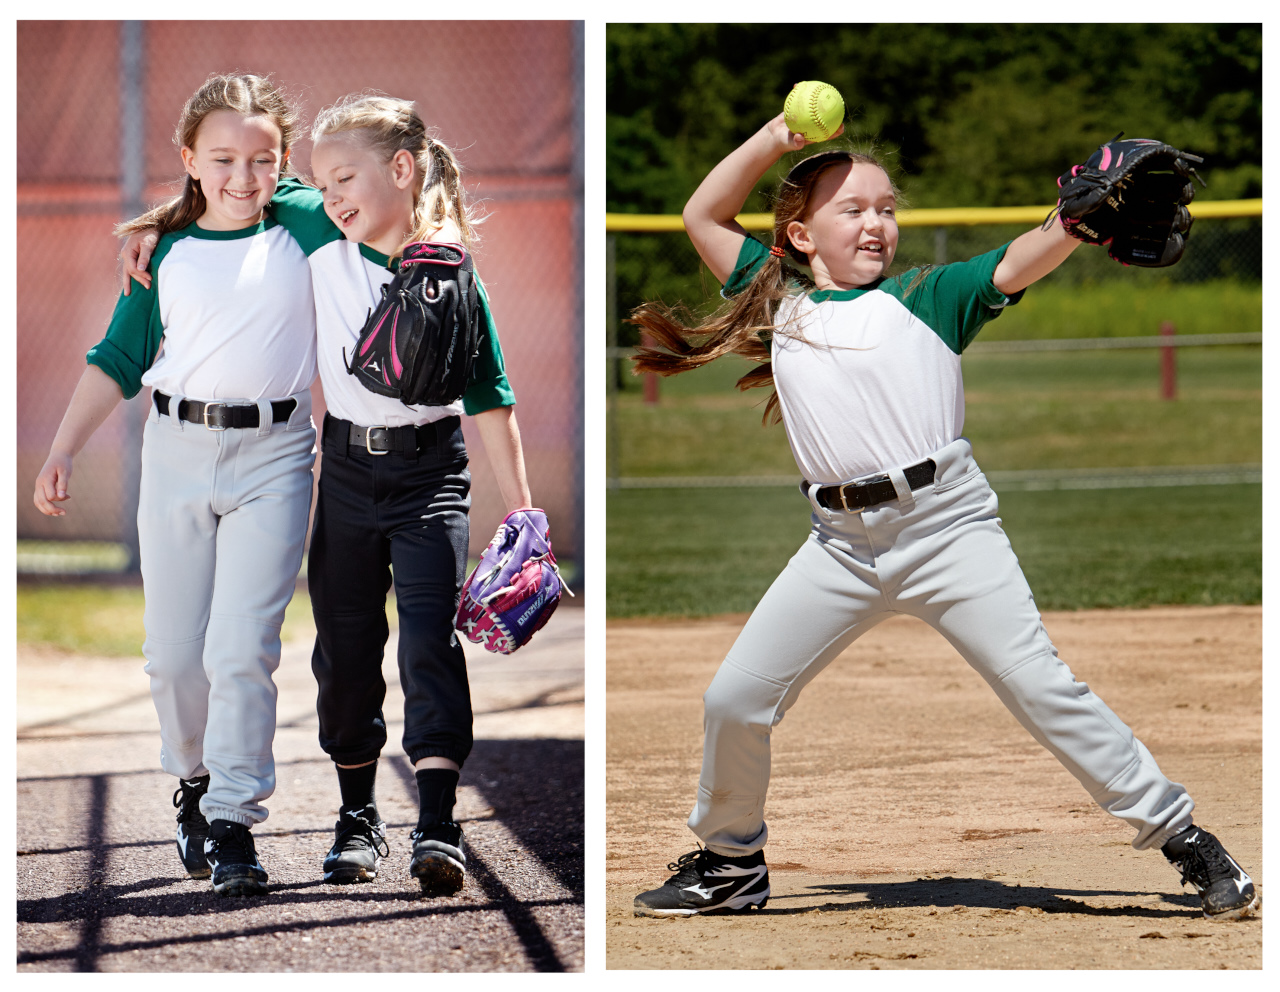 Softball - Girls.jpg